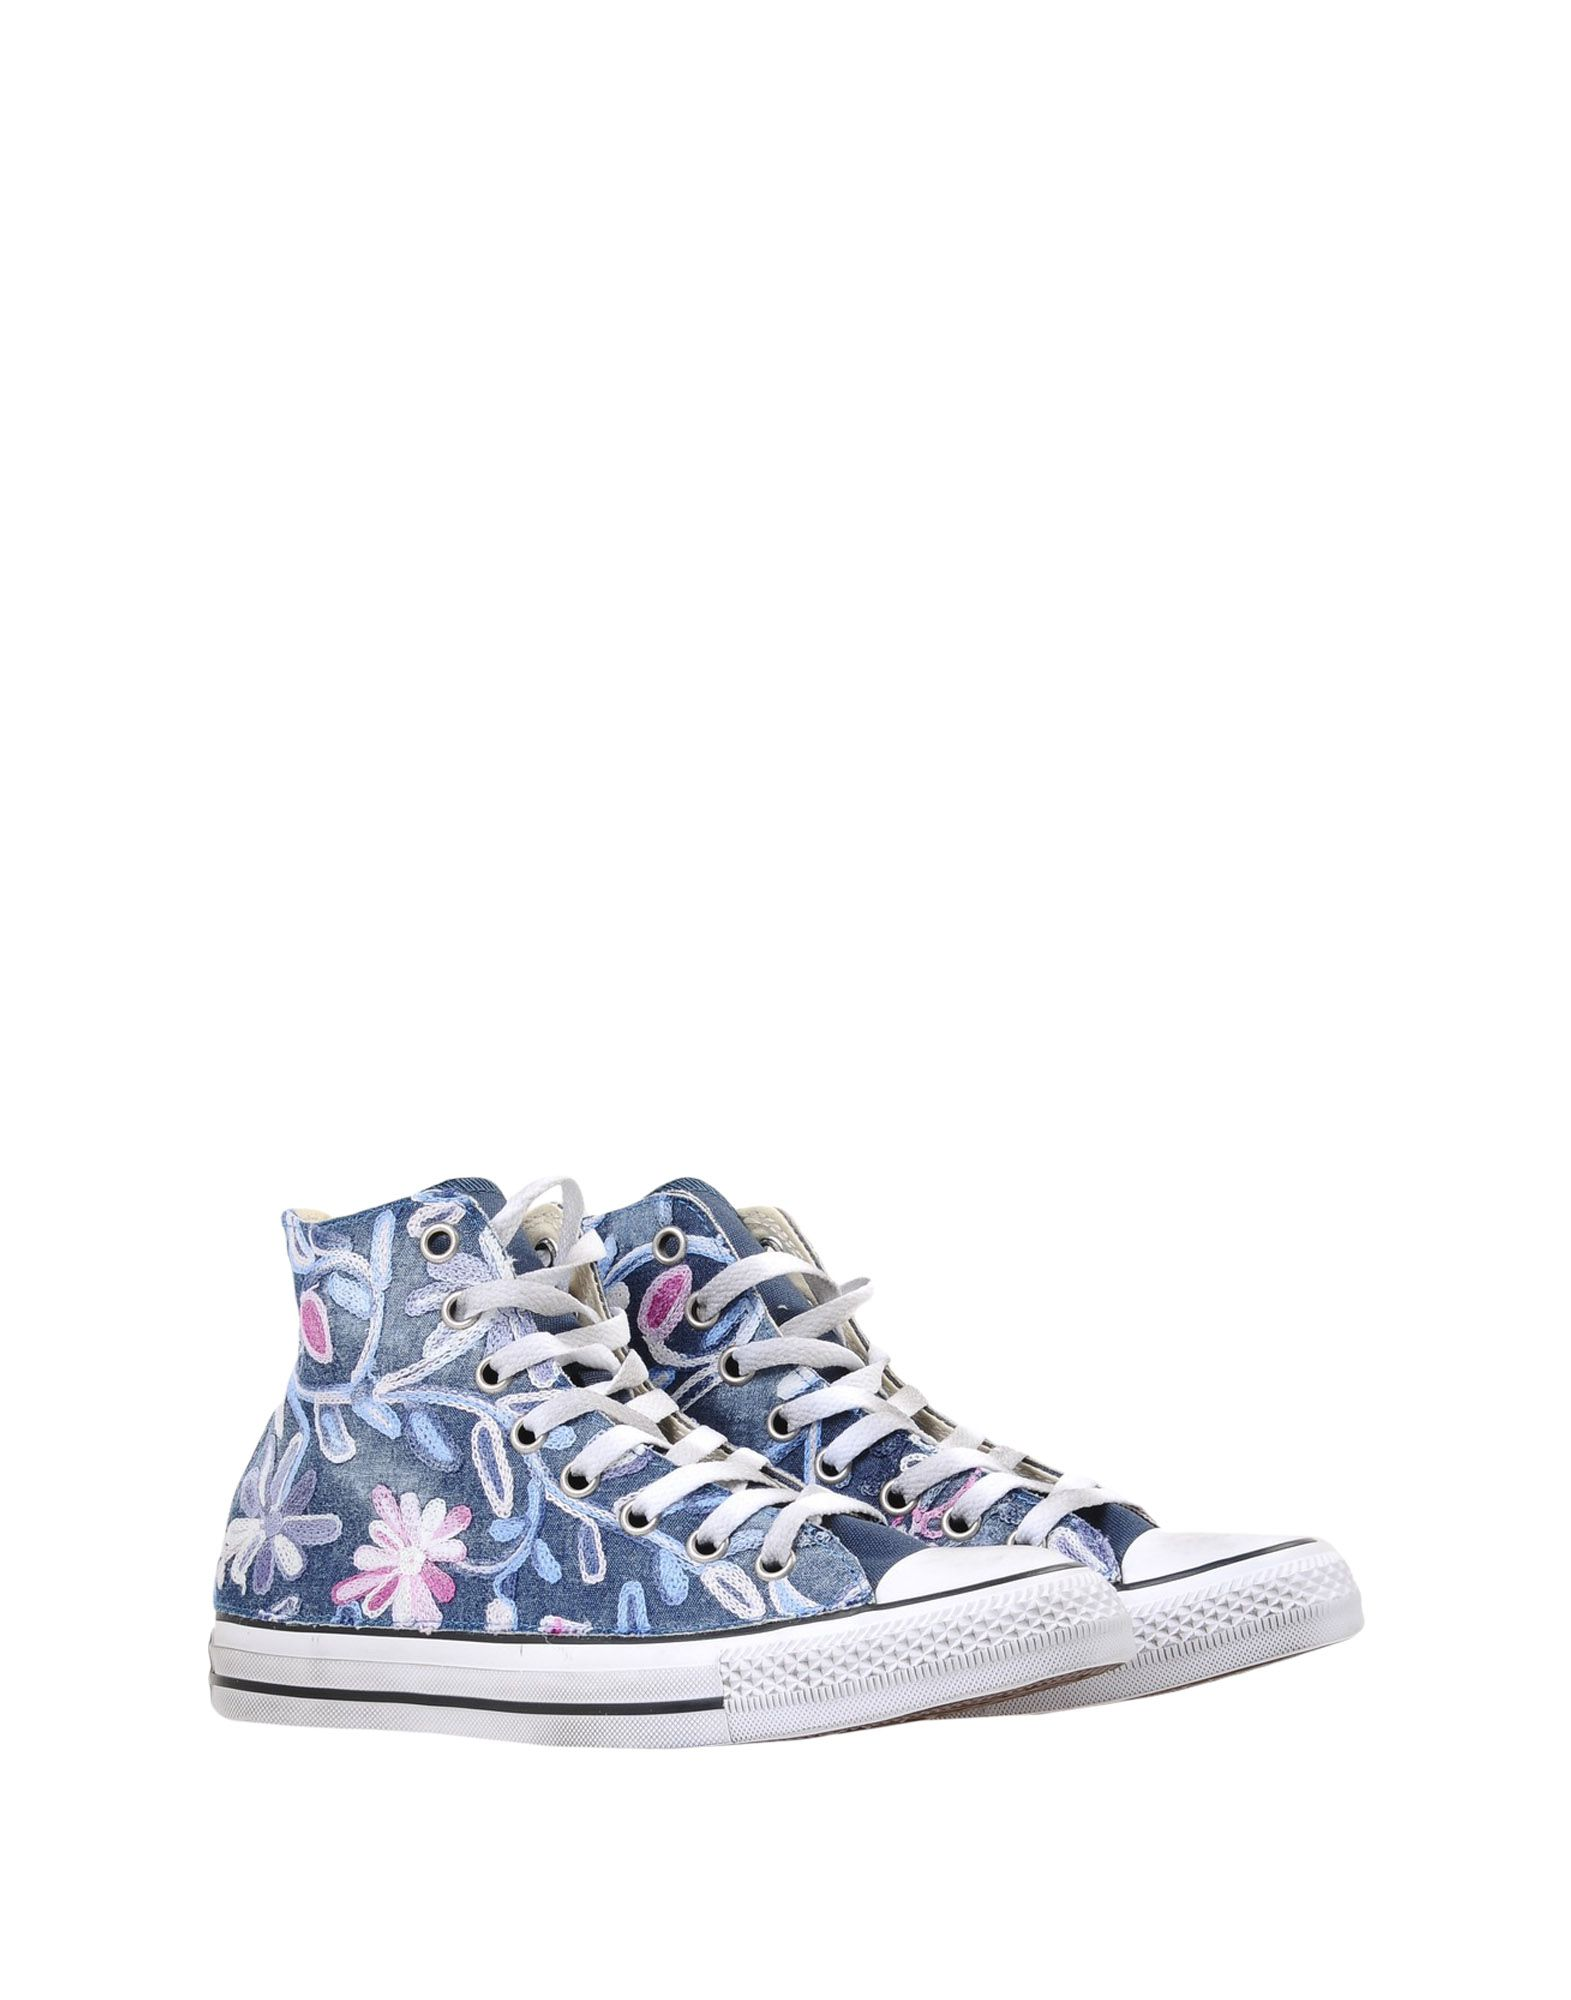 Sneakers Converse Limited Edition Ctas Hi Canvas/Denim Ltd - Femme - Sneakers Converse Limited Edition sur